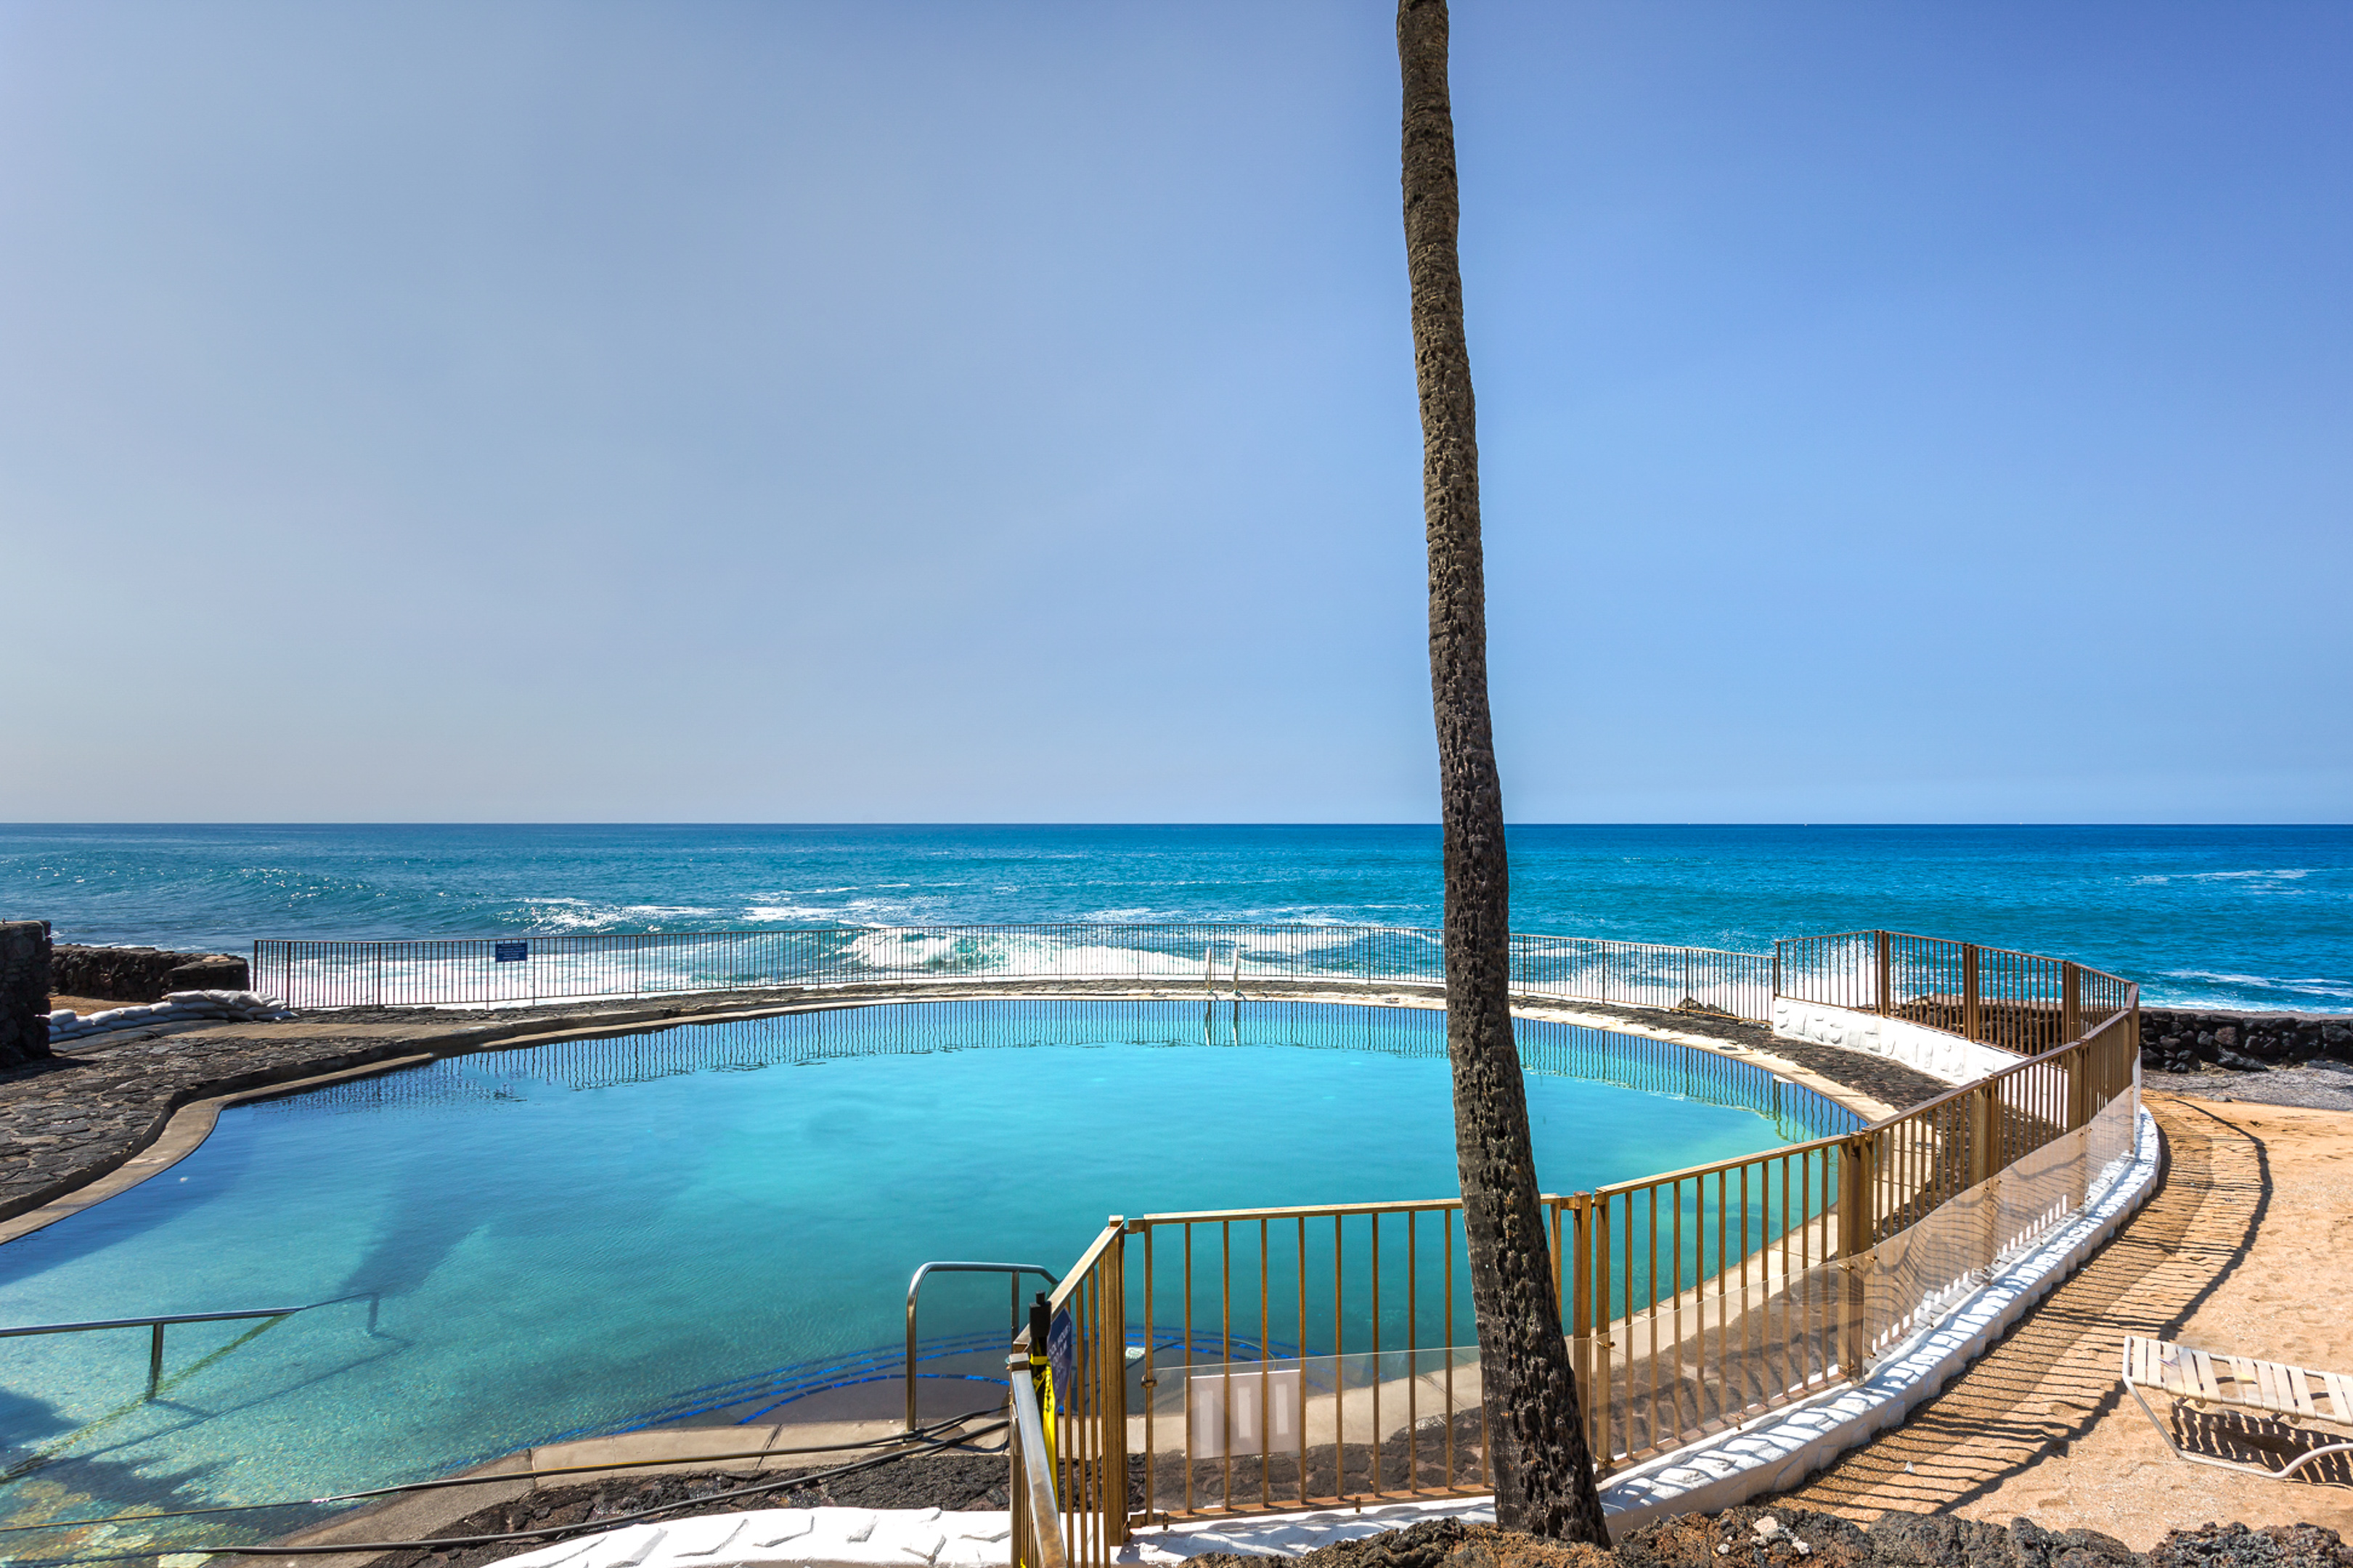 Another view of the salt water pool.